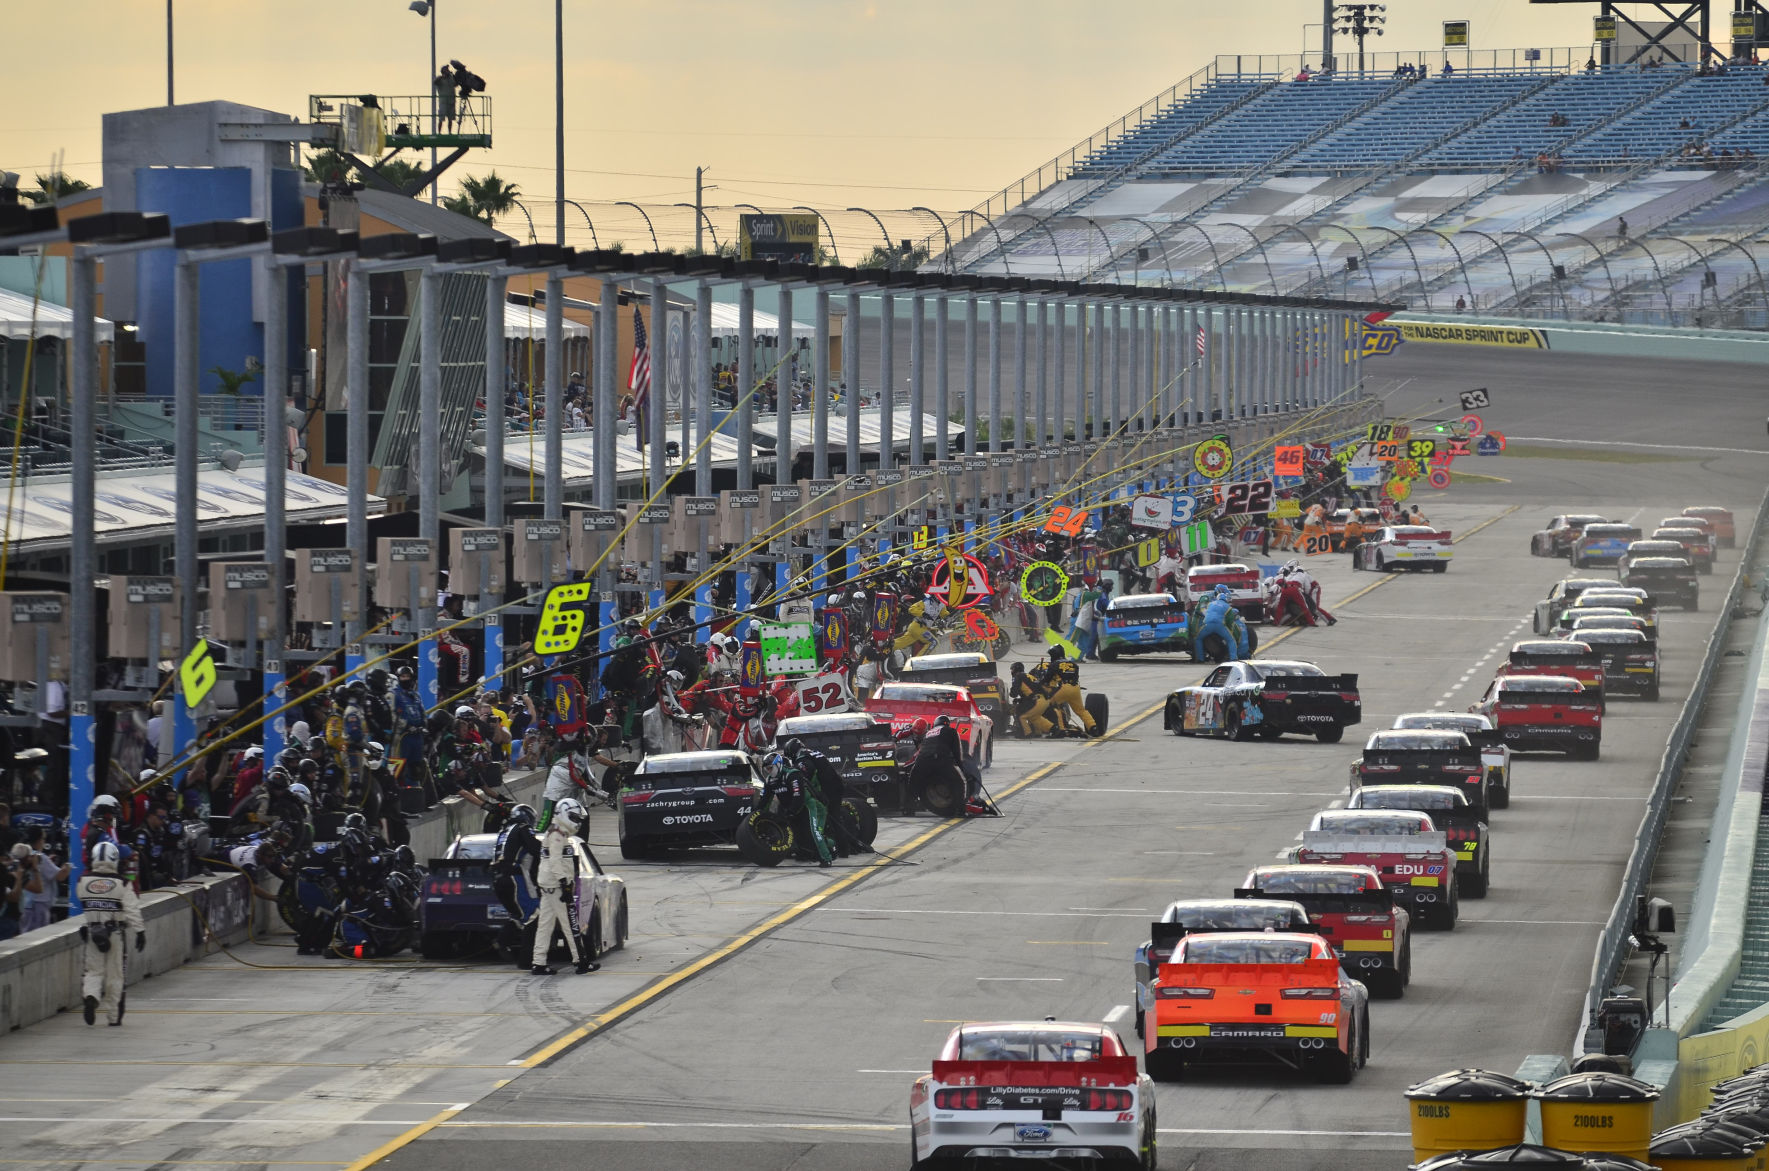 Vehicle Manufacturers In Nascar Manufacturers Offer Some Ideas On The Future Of Nascar